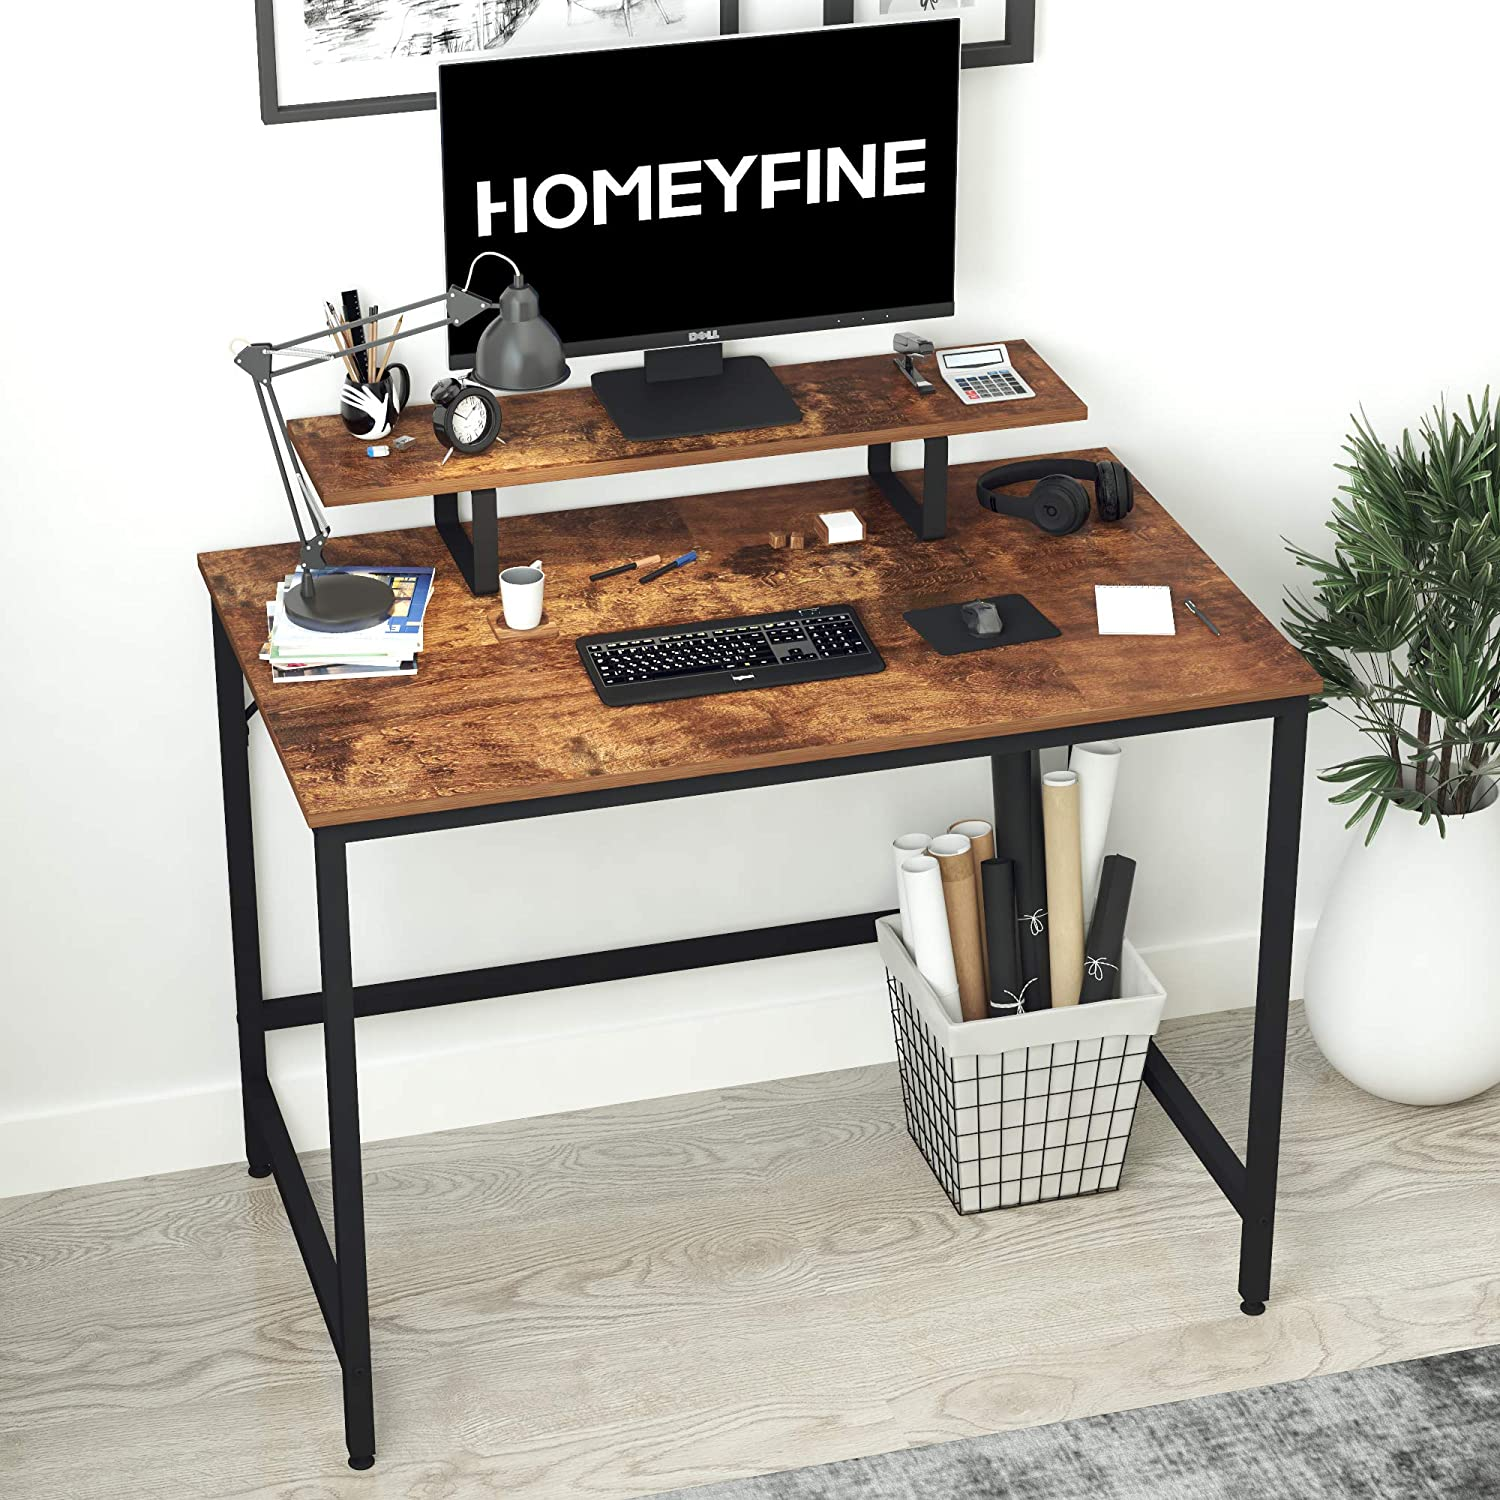 HOMEYFINE Computer Desk,Laptop Table with Storage for Controller,40 Inches,Wood and Metal,Study Table for Home Office(Vintage Oak Finish)